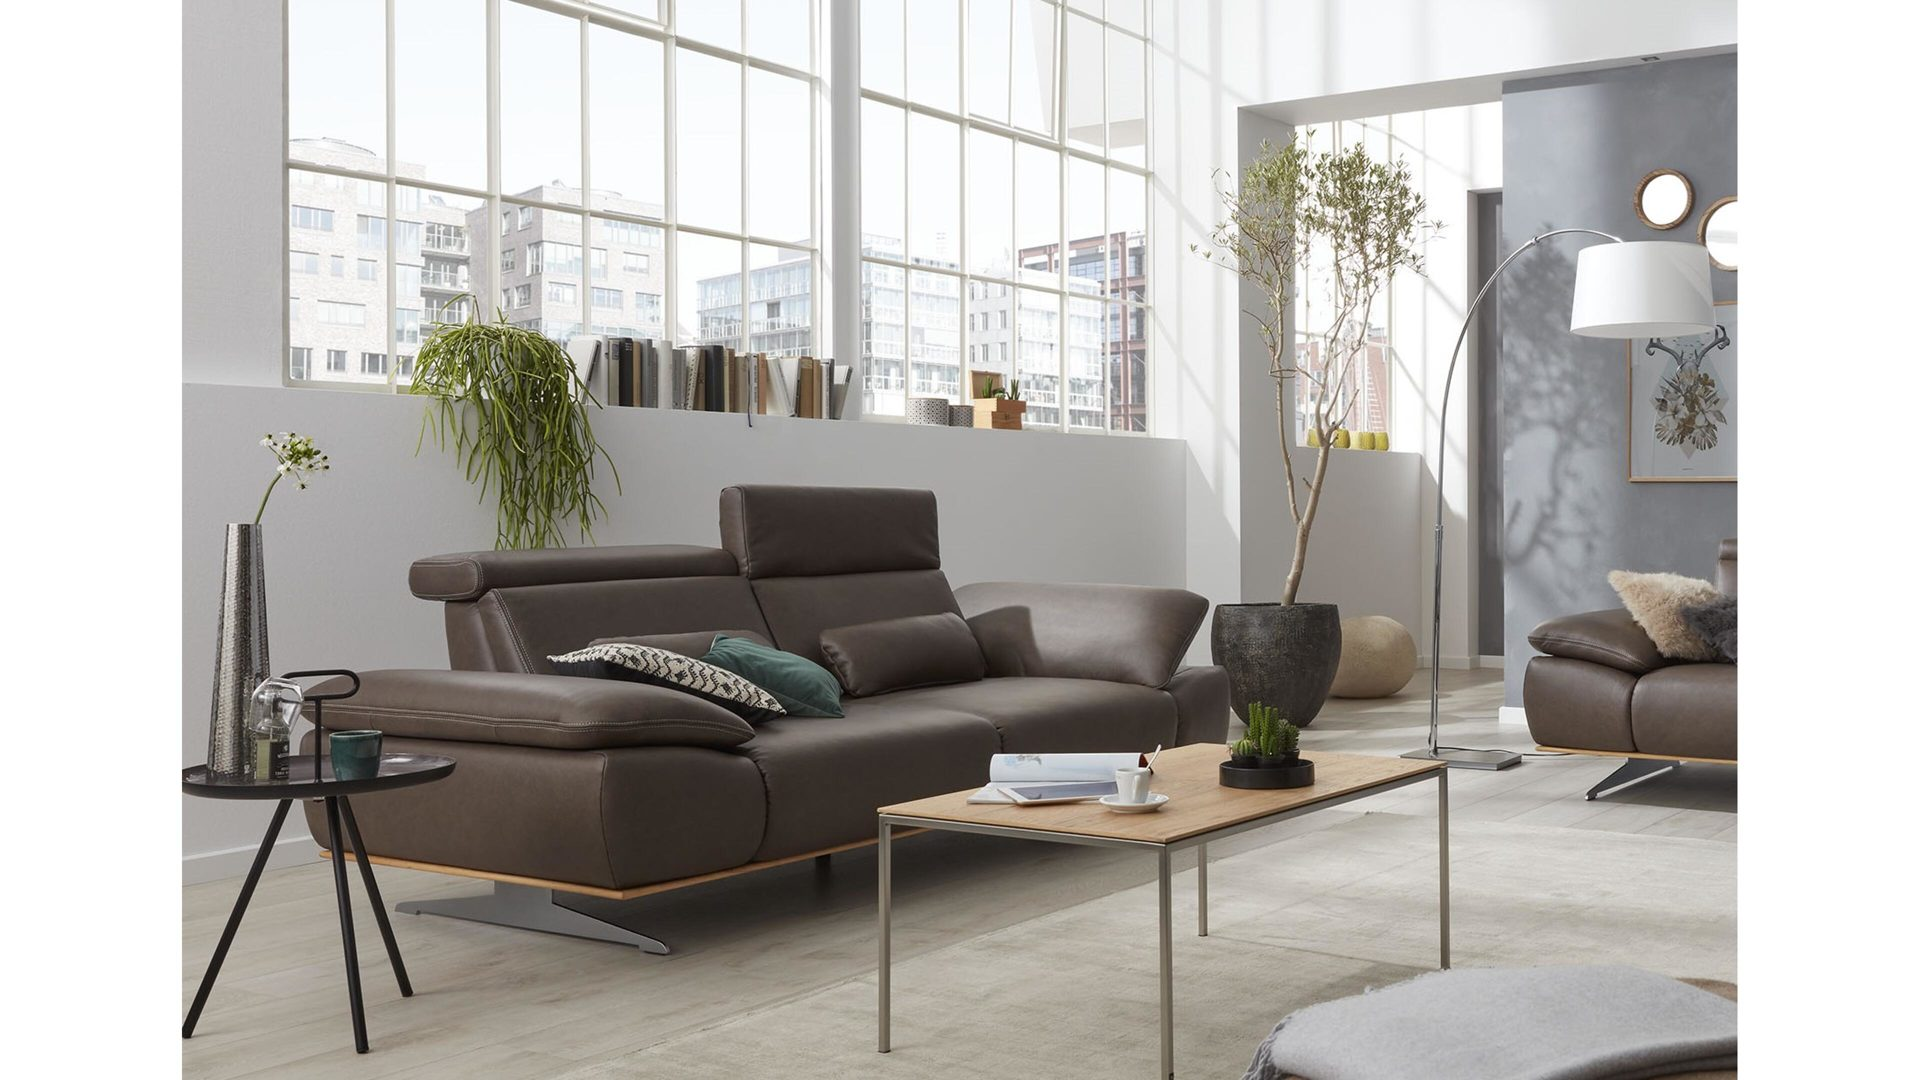 Interliving Sofa Serie 4350 Dreisitzer Braunes Leder Rodeo Goa